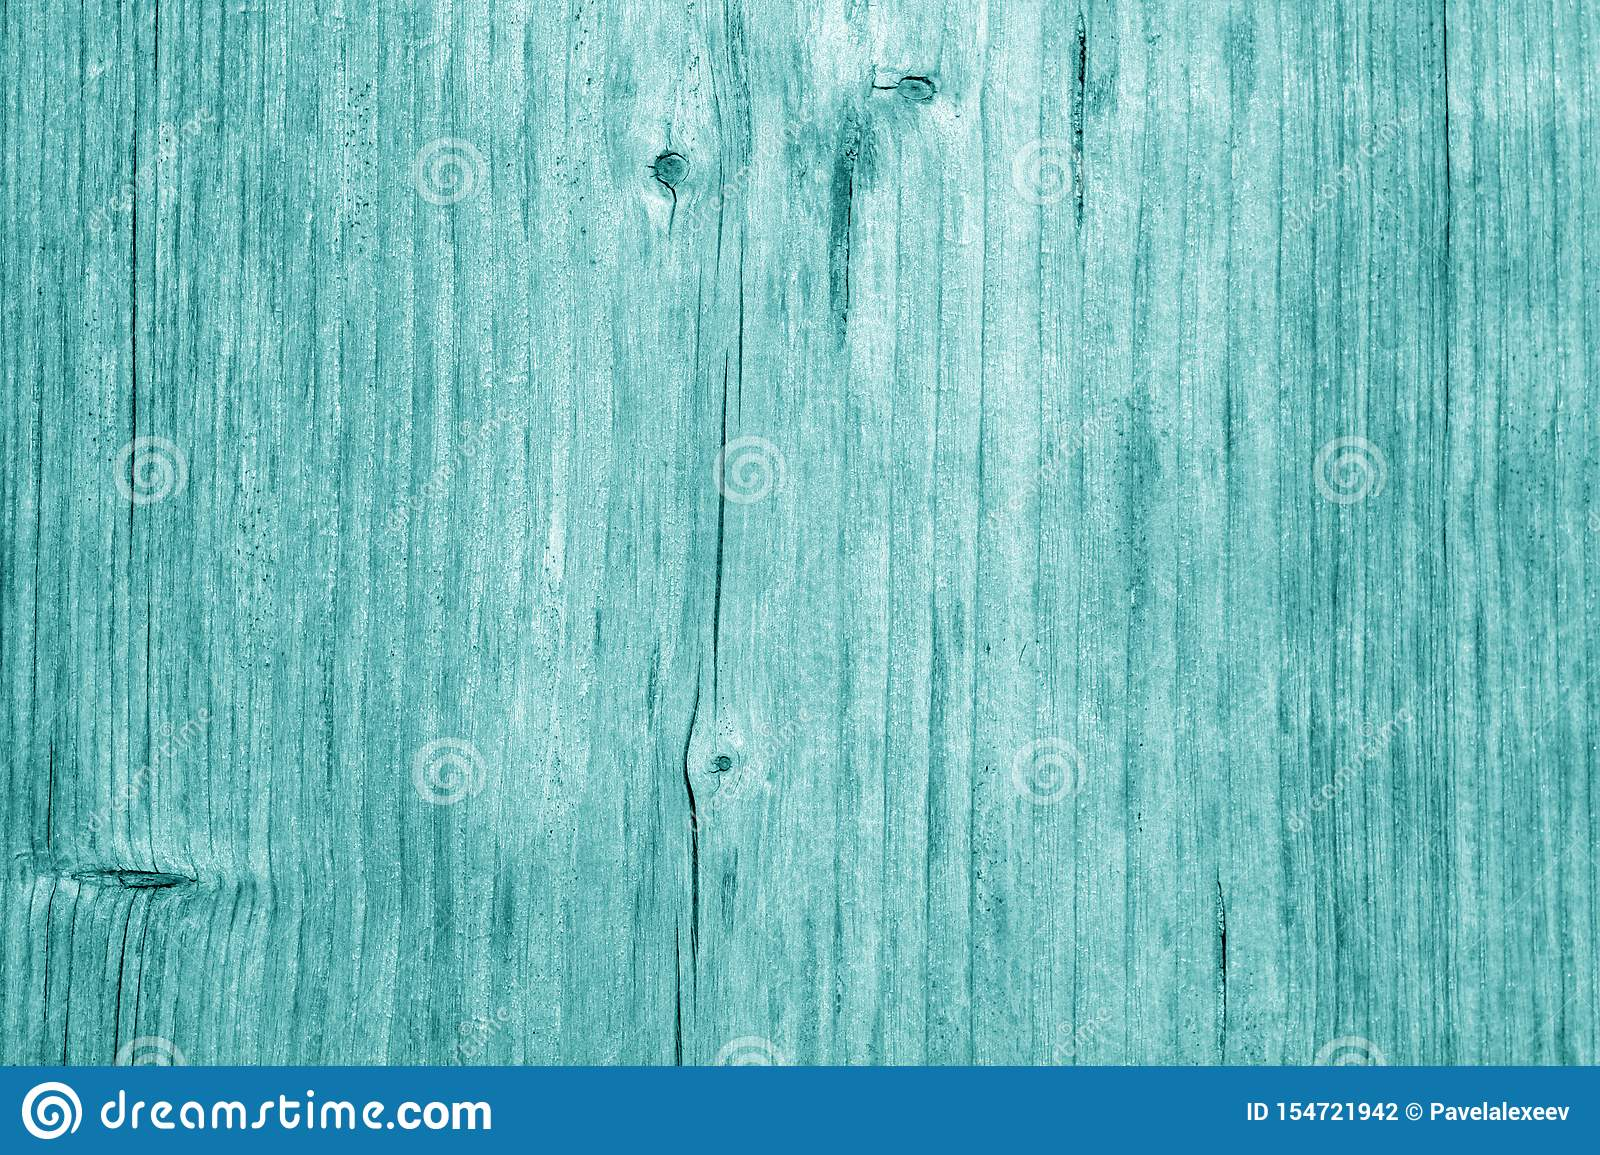 Vintage Blue and Green Painted Cutting Board